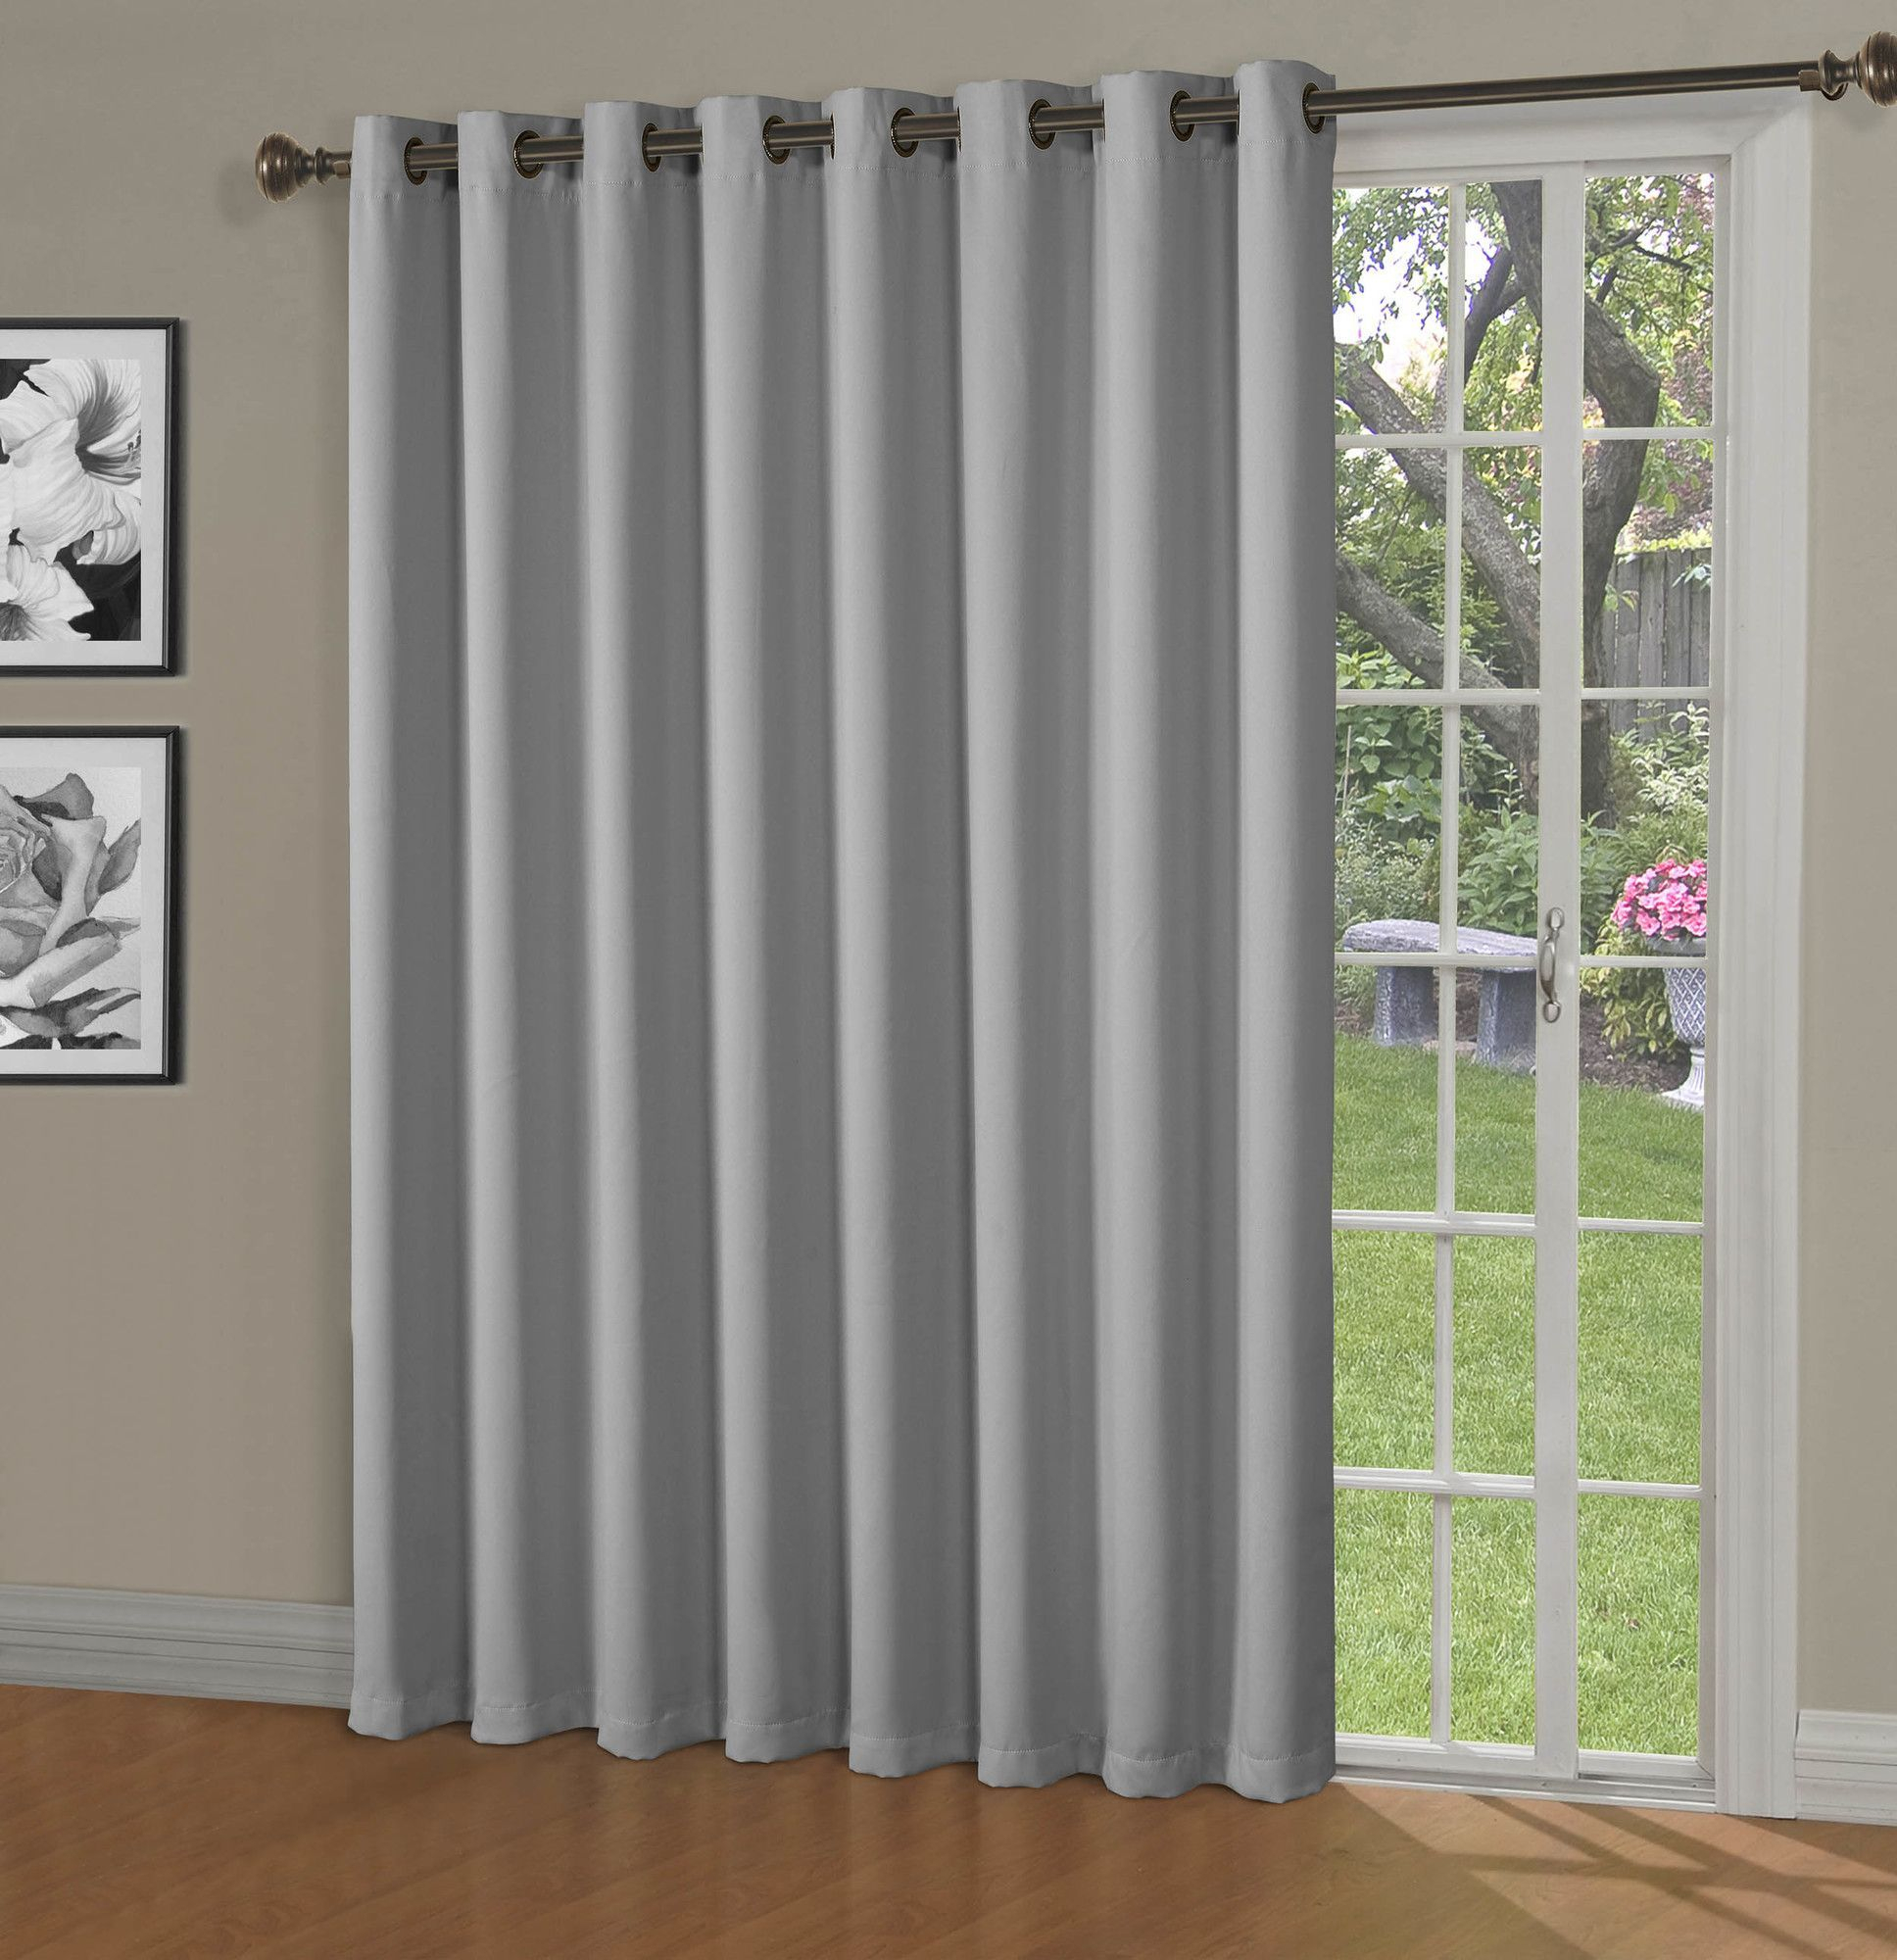 Maya Blackout Thermal Patio Door Extra Wide Grommet Curtain With Grommet Blackout Patio Door Window Curtain Panels (View 11 of 20)